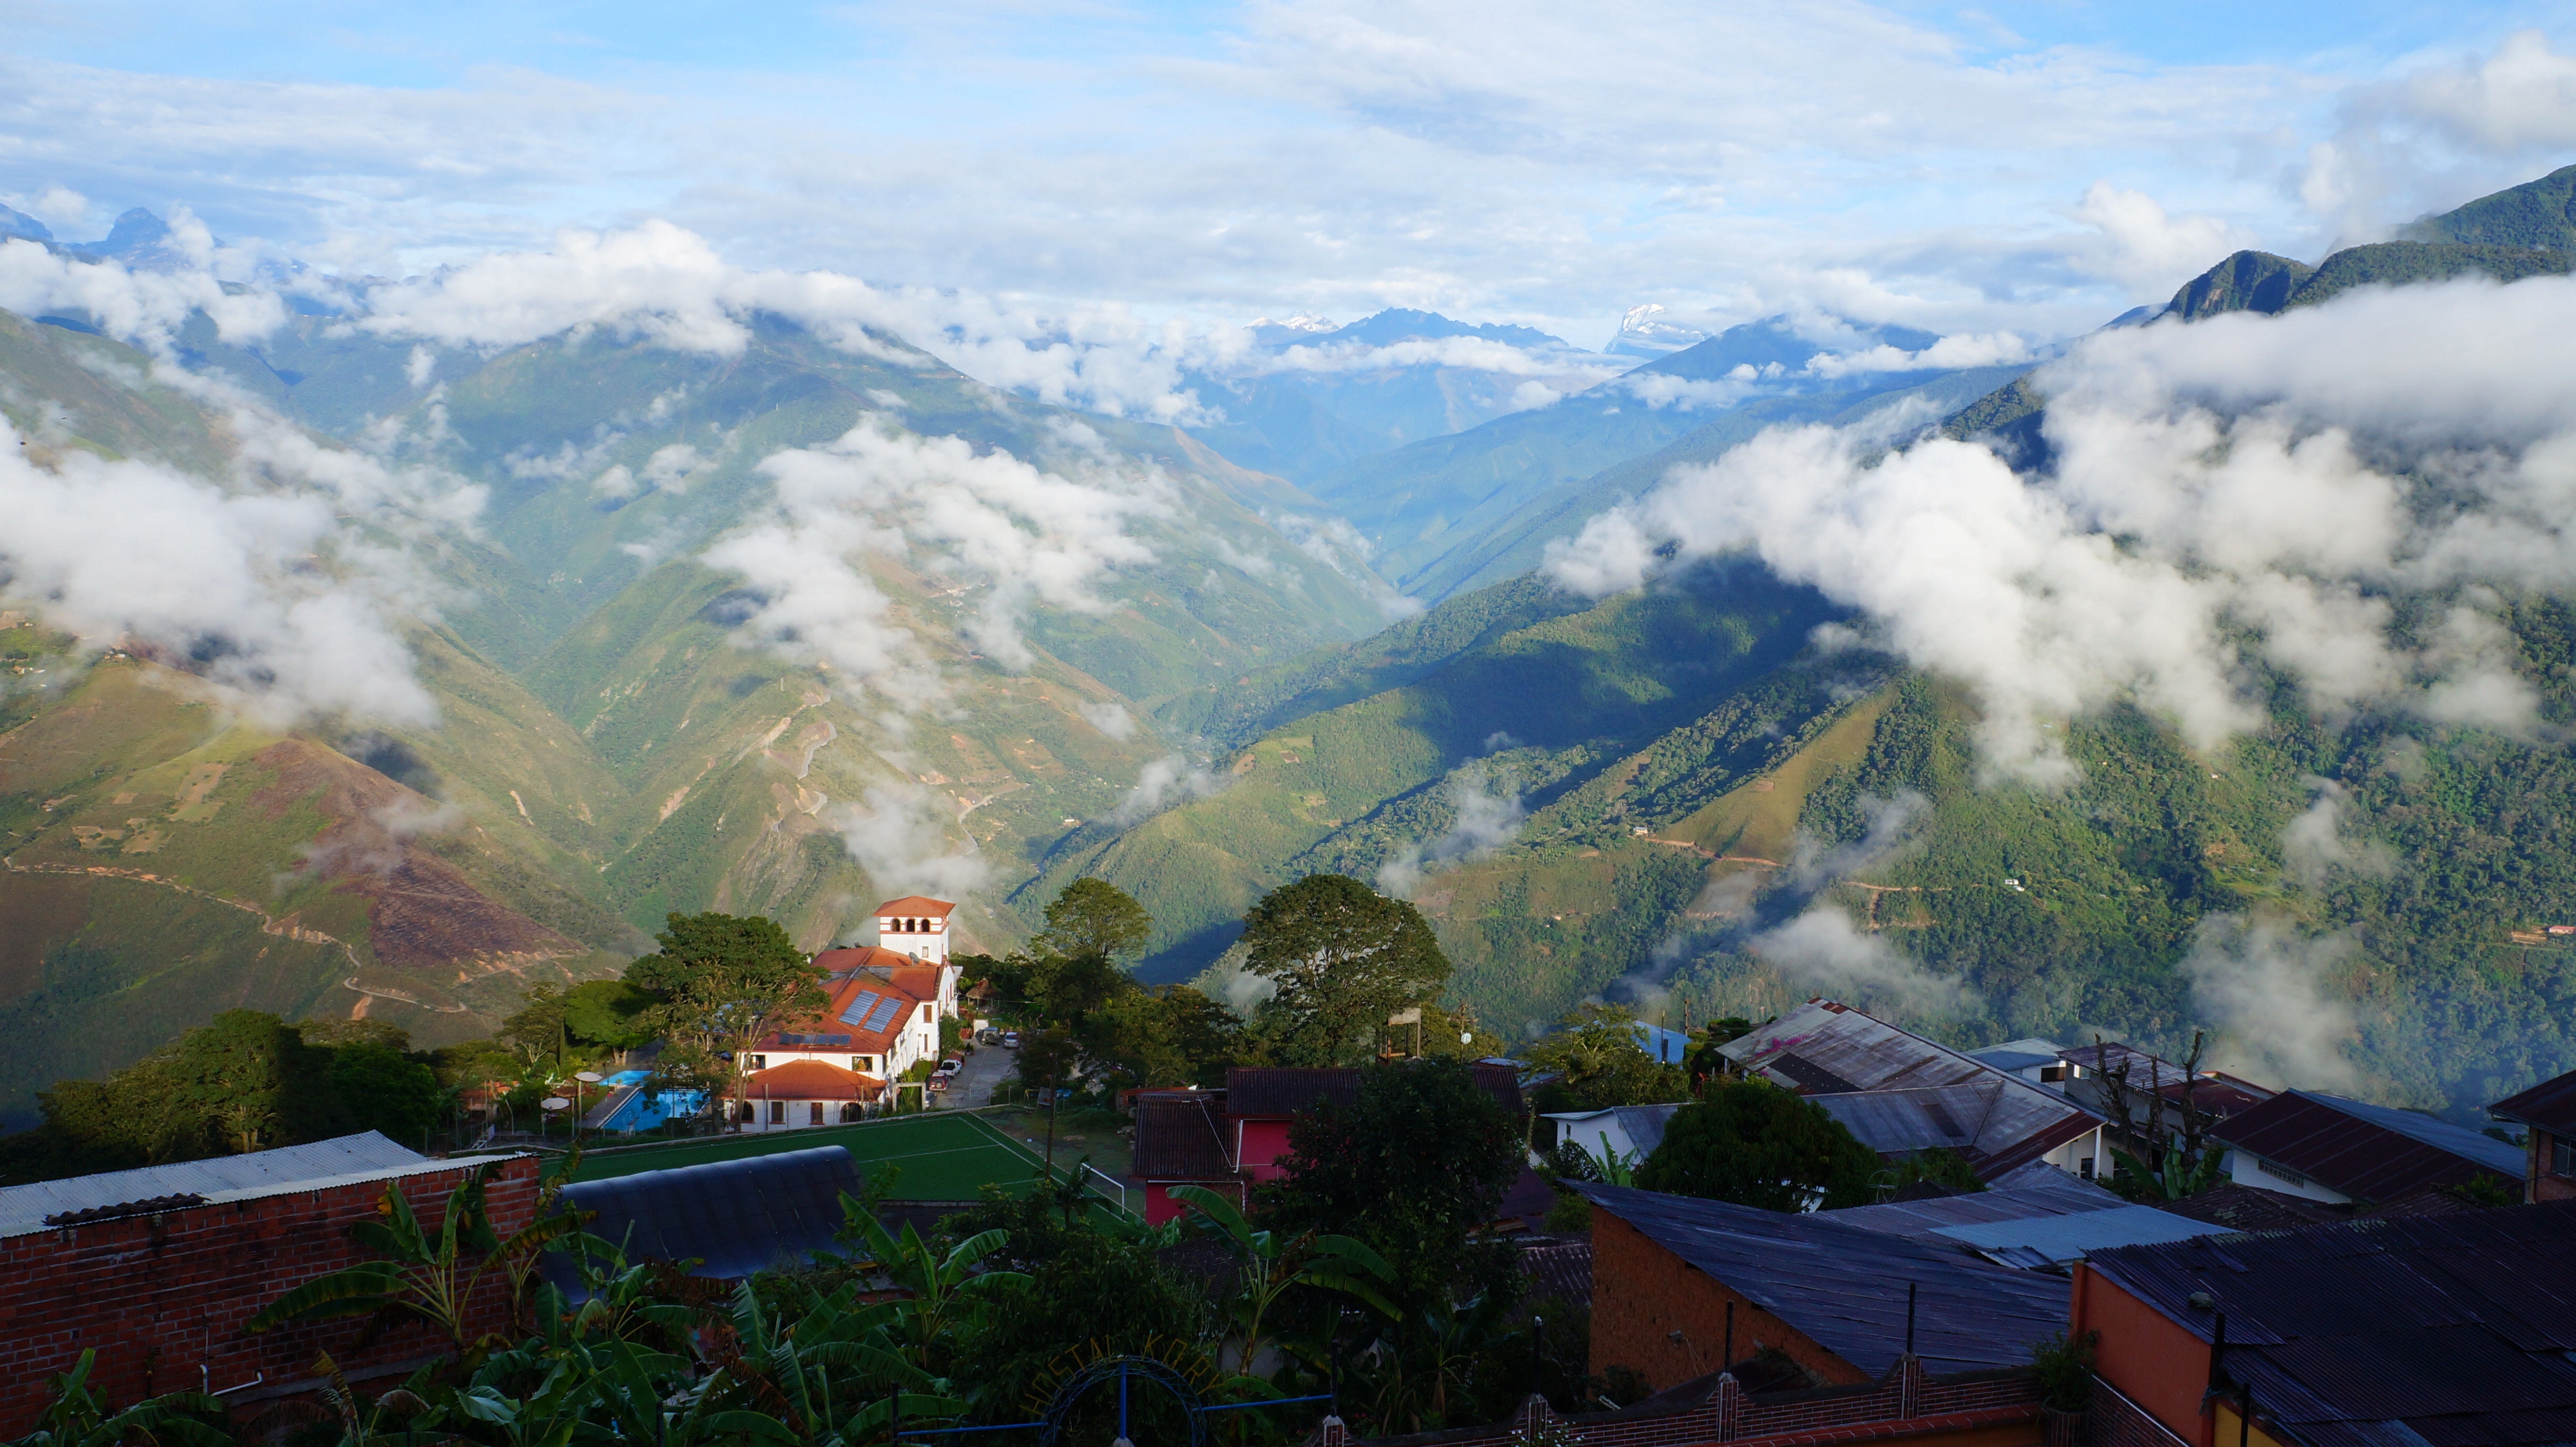 corioco chat rooms Coroico is a hill top town in the yungas region of bolivia and is a good do you want to chat about coroico coroico and some rooms in their own.